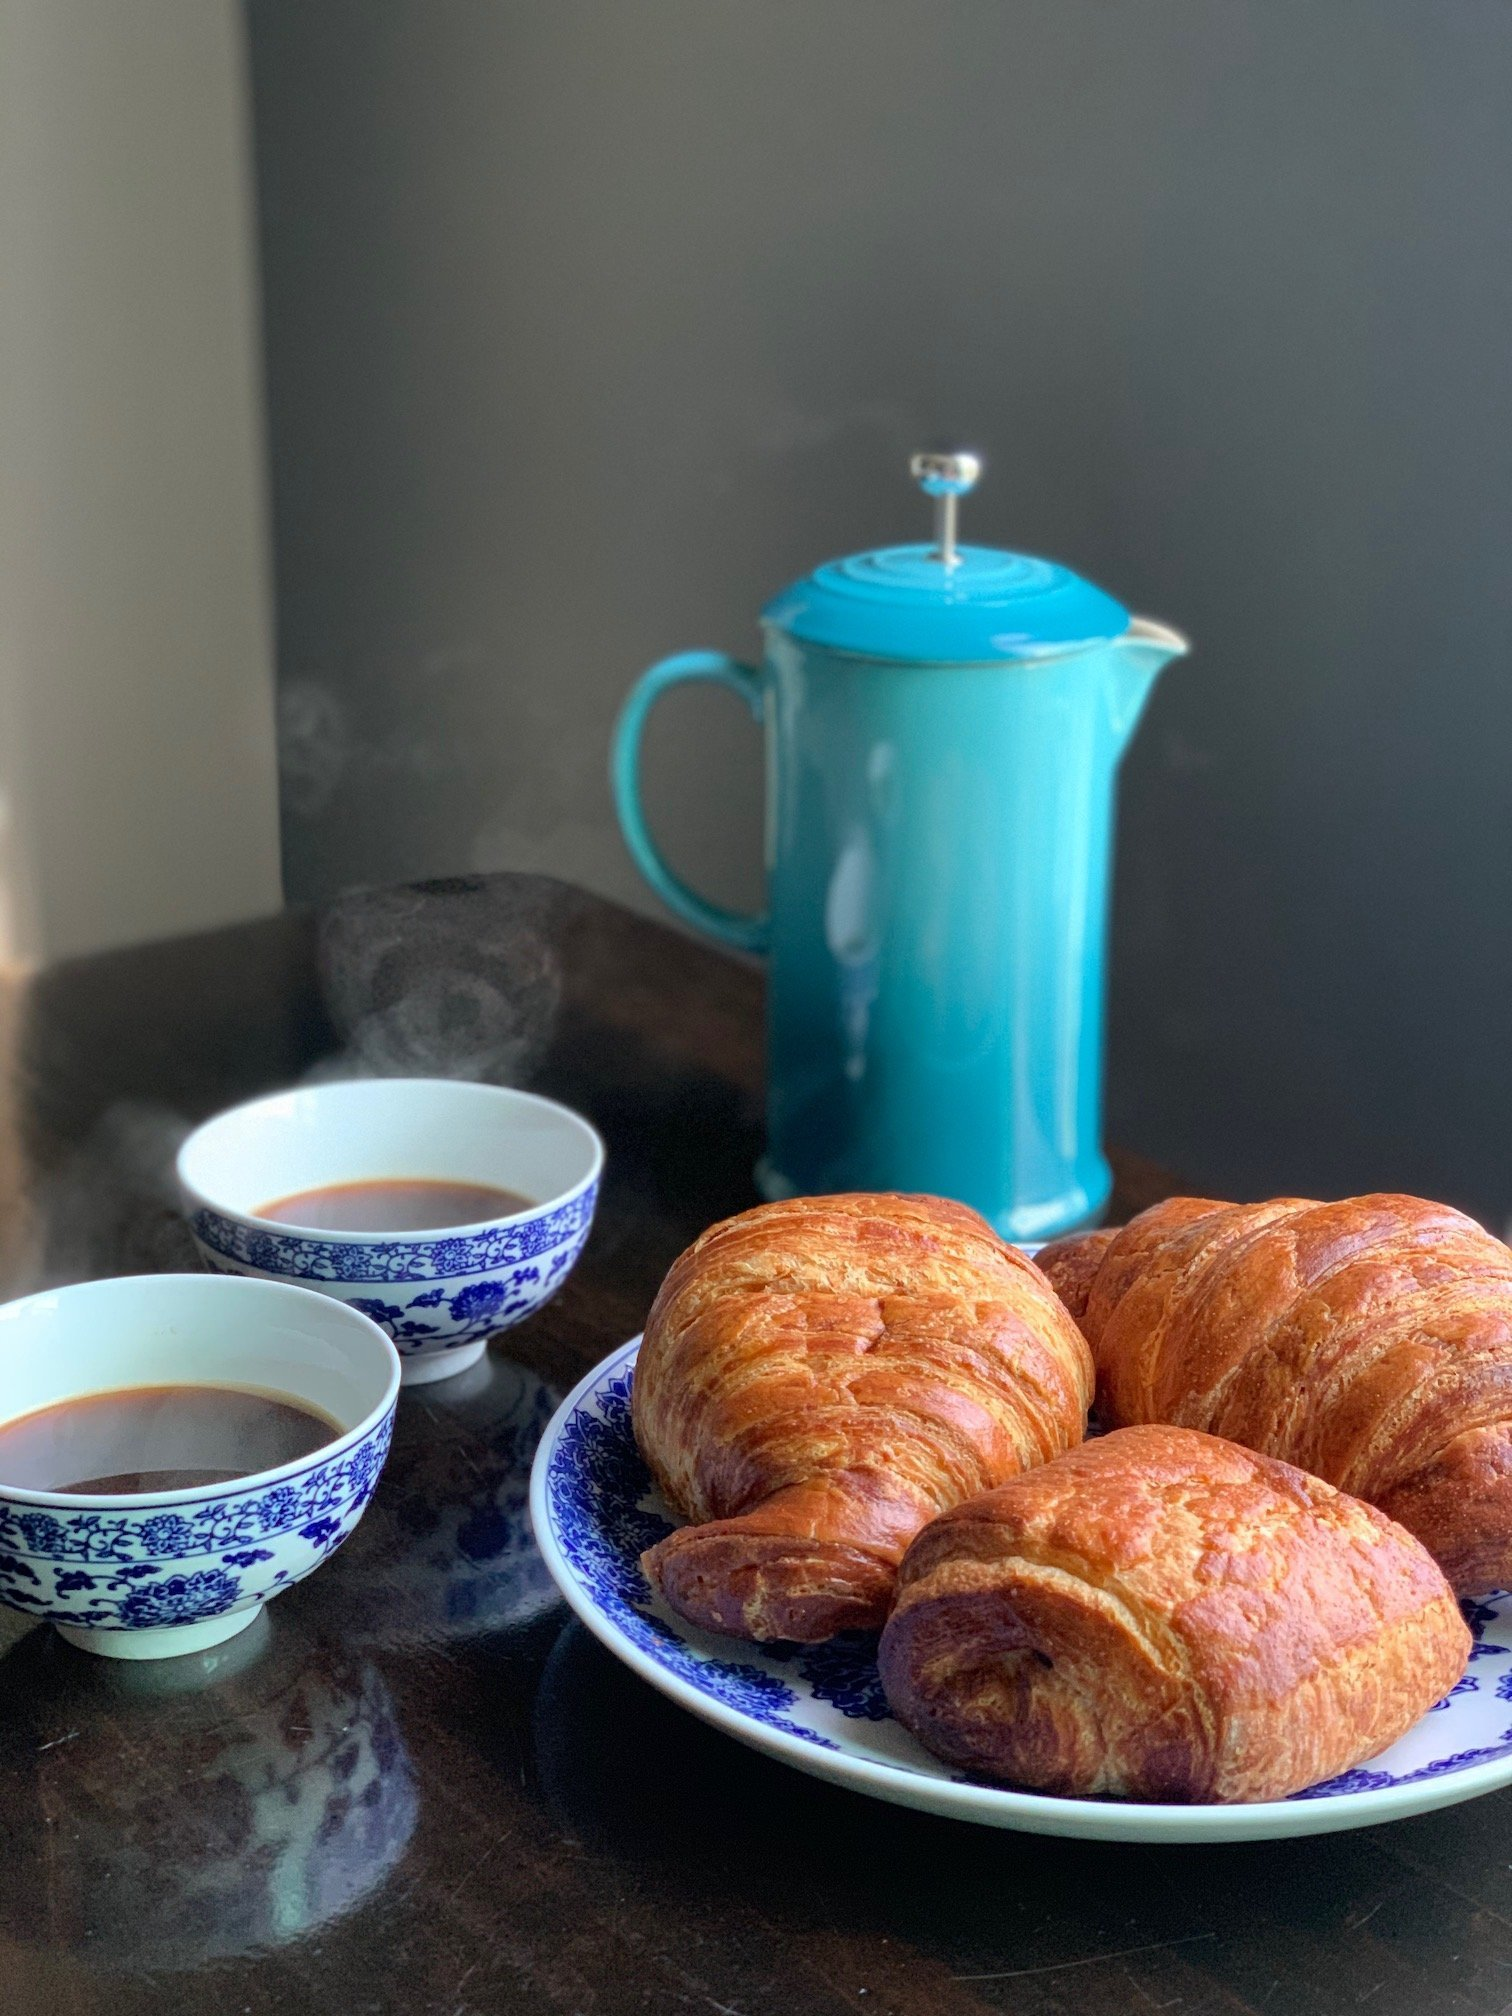 steaming hot coffee with a blue french press and croissants